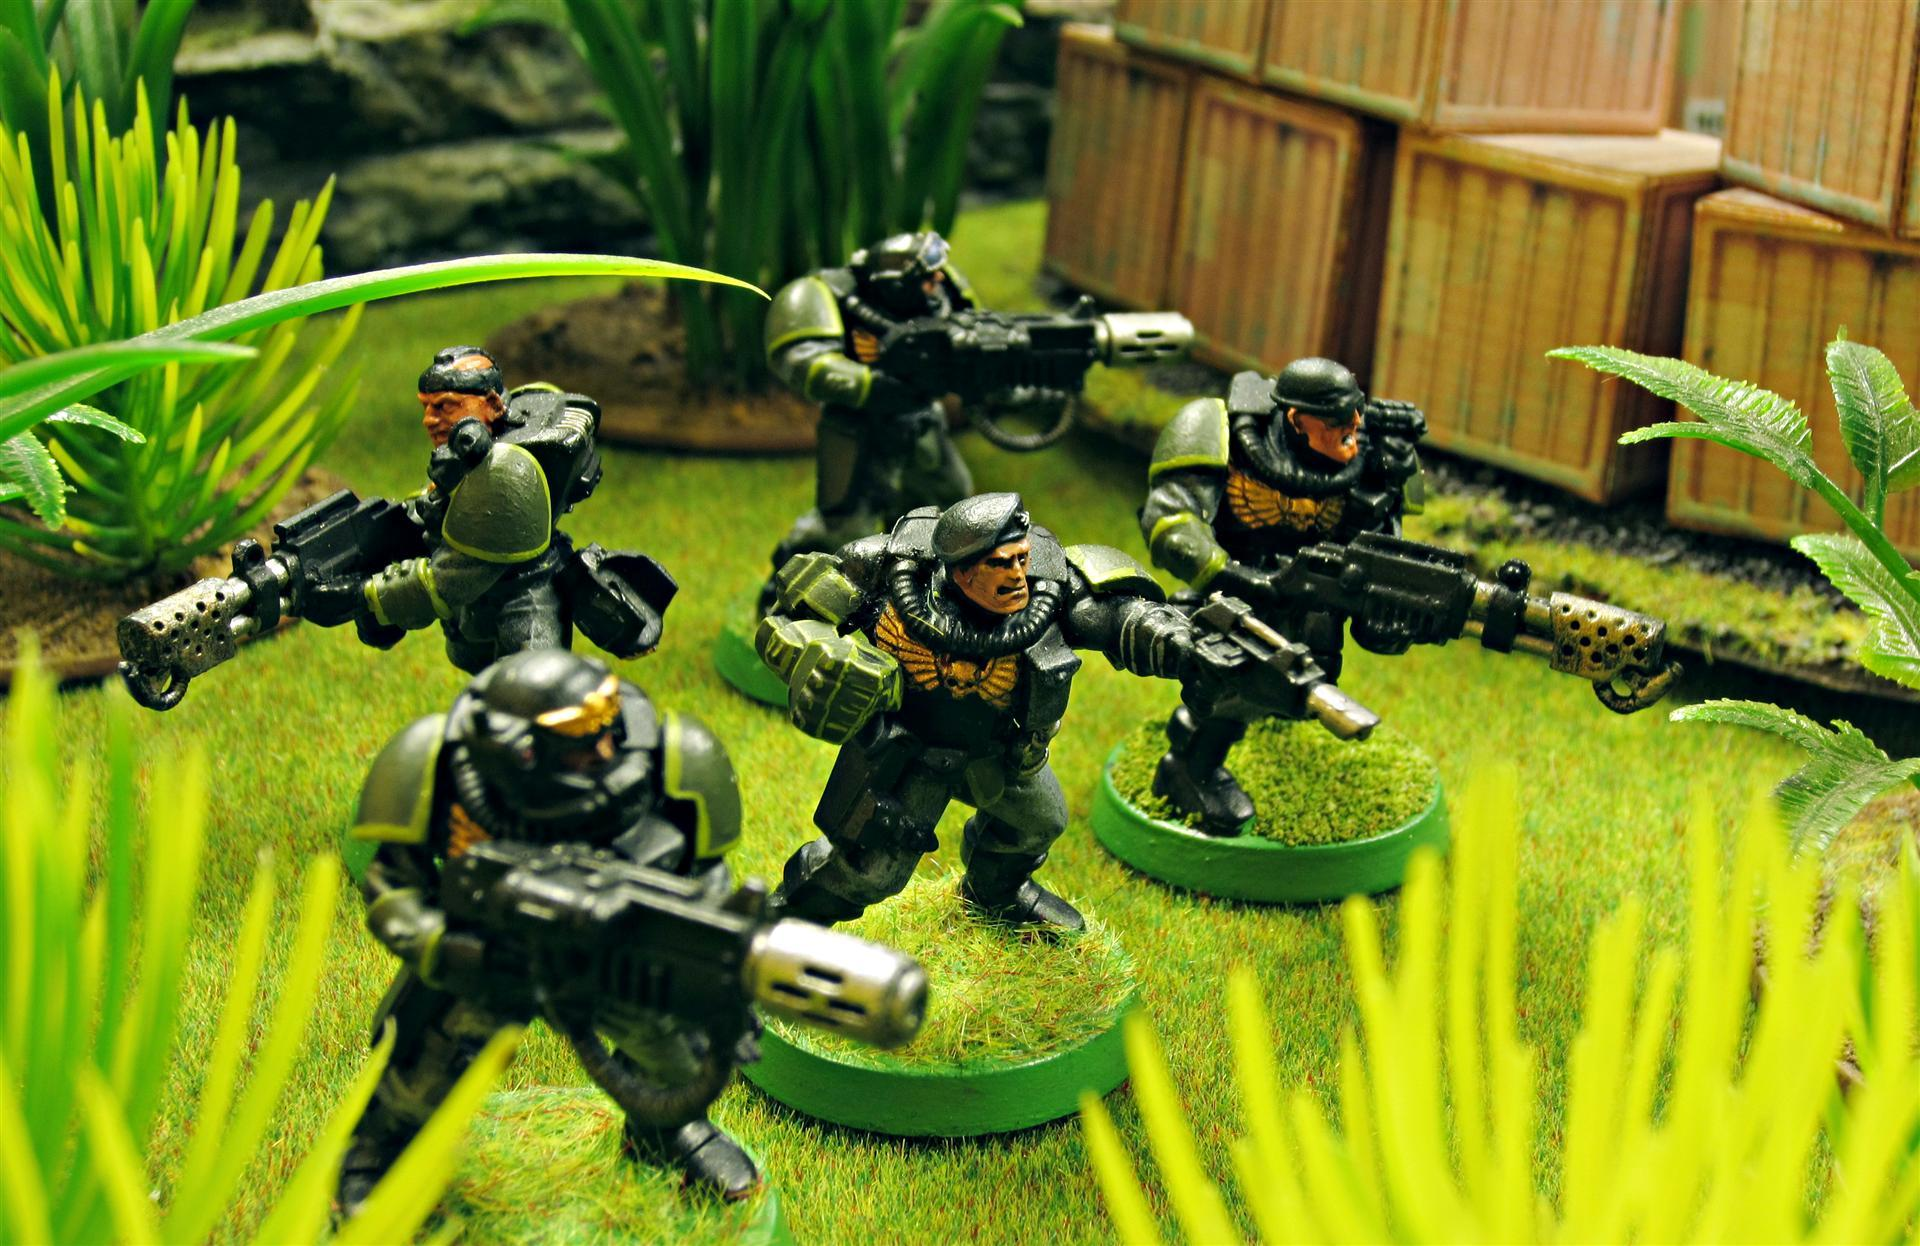 Astra Militarum, Carapace, Carapace Armour, Commandos, Company Command Squad, Company Commander, Flamer, Guard, Imperial, Imperial Guard, Las Pistol, Meltagun, Power Fist, Special Forces, Warhammer 40,000